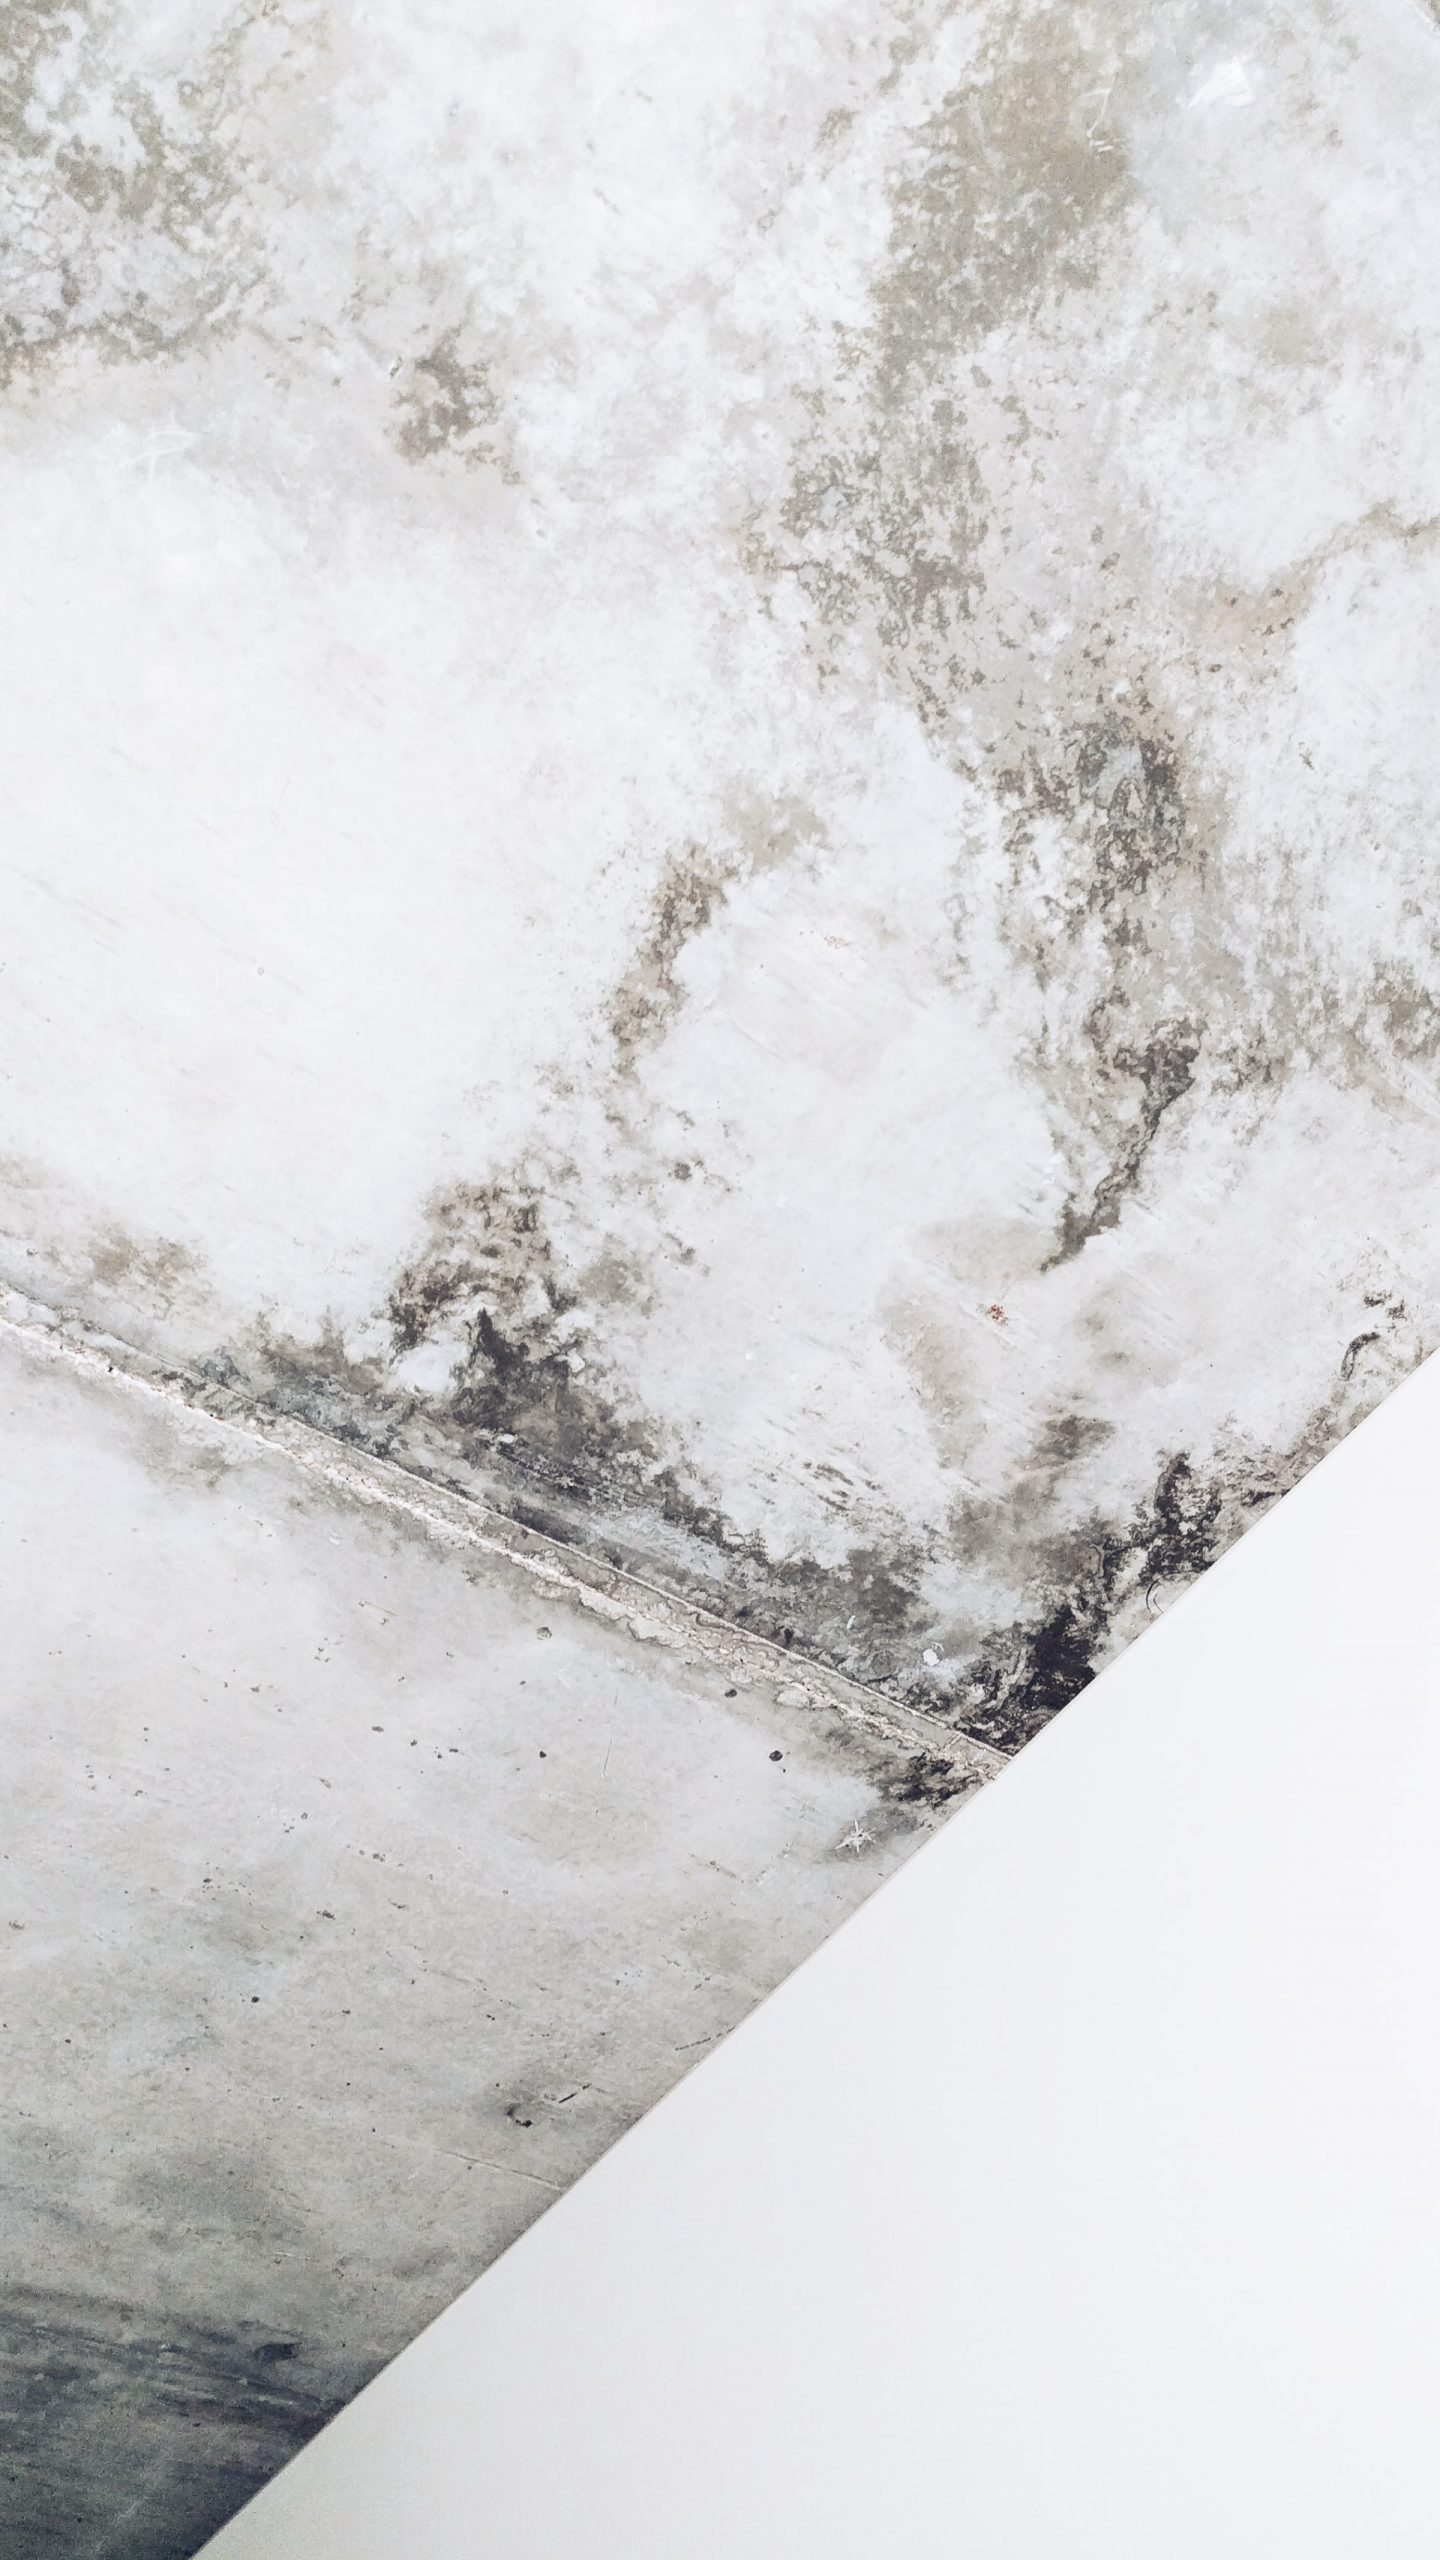 What Happens If You Clean Black Mold